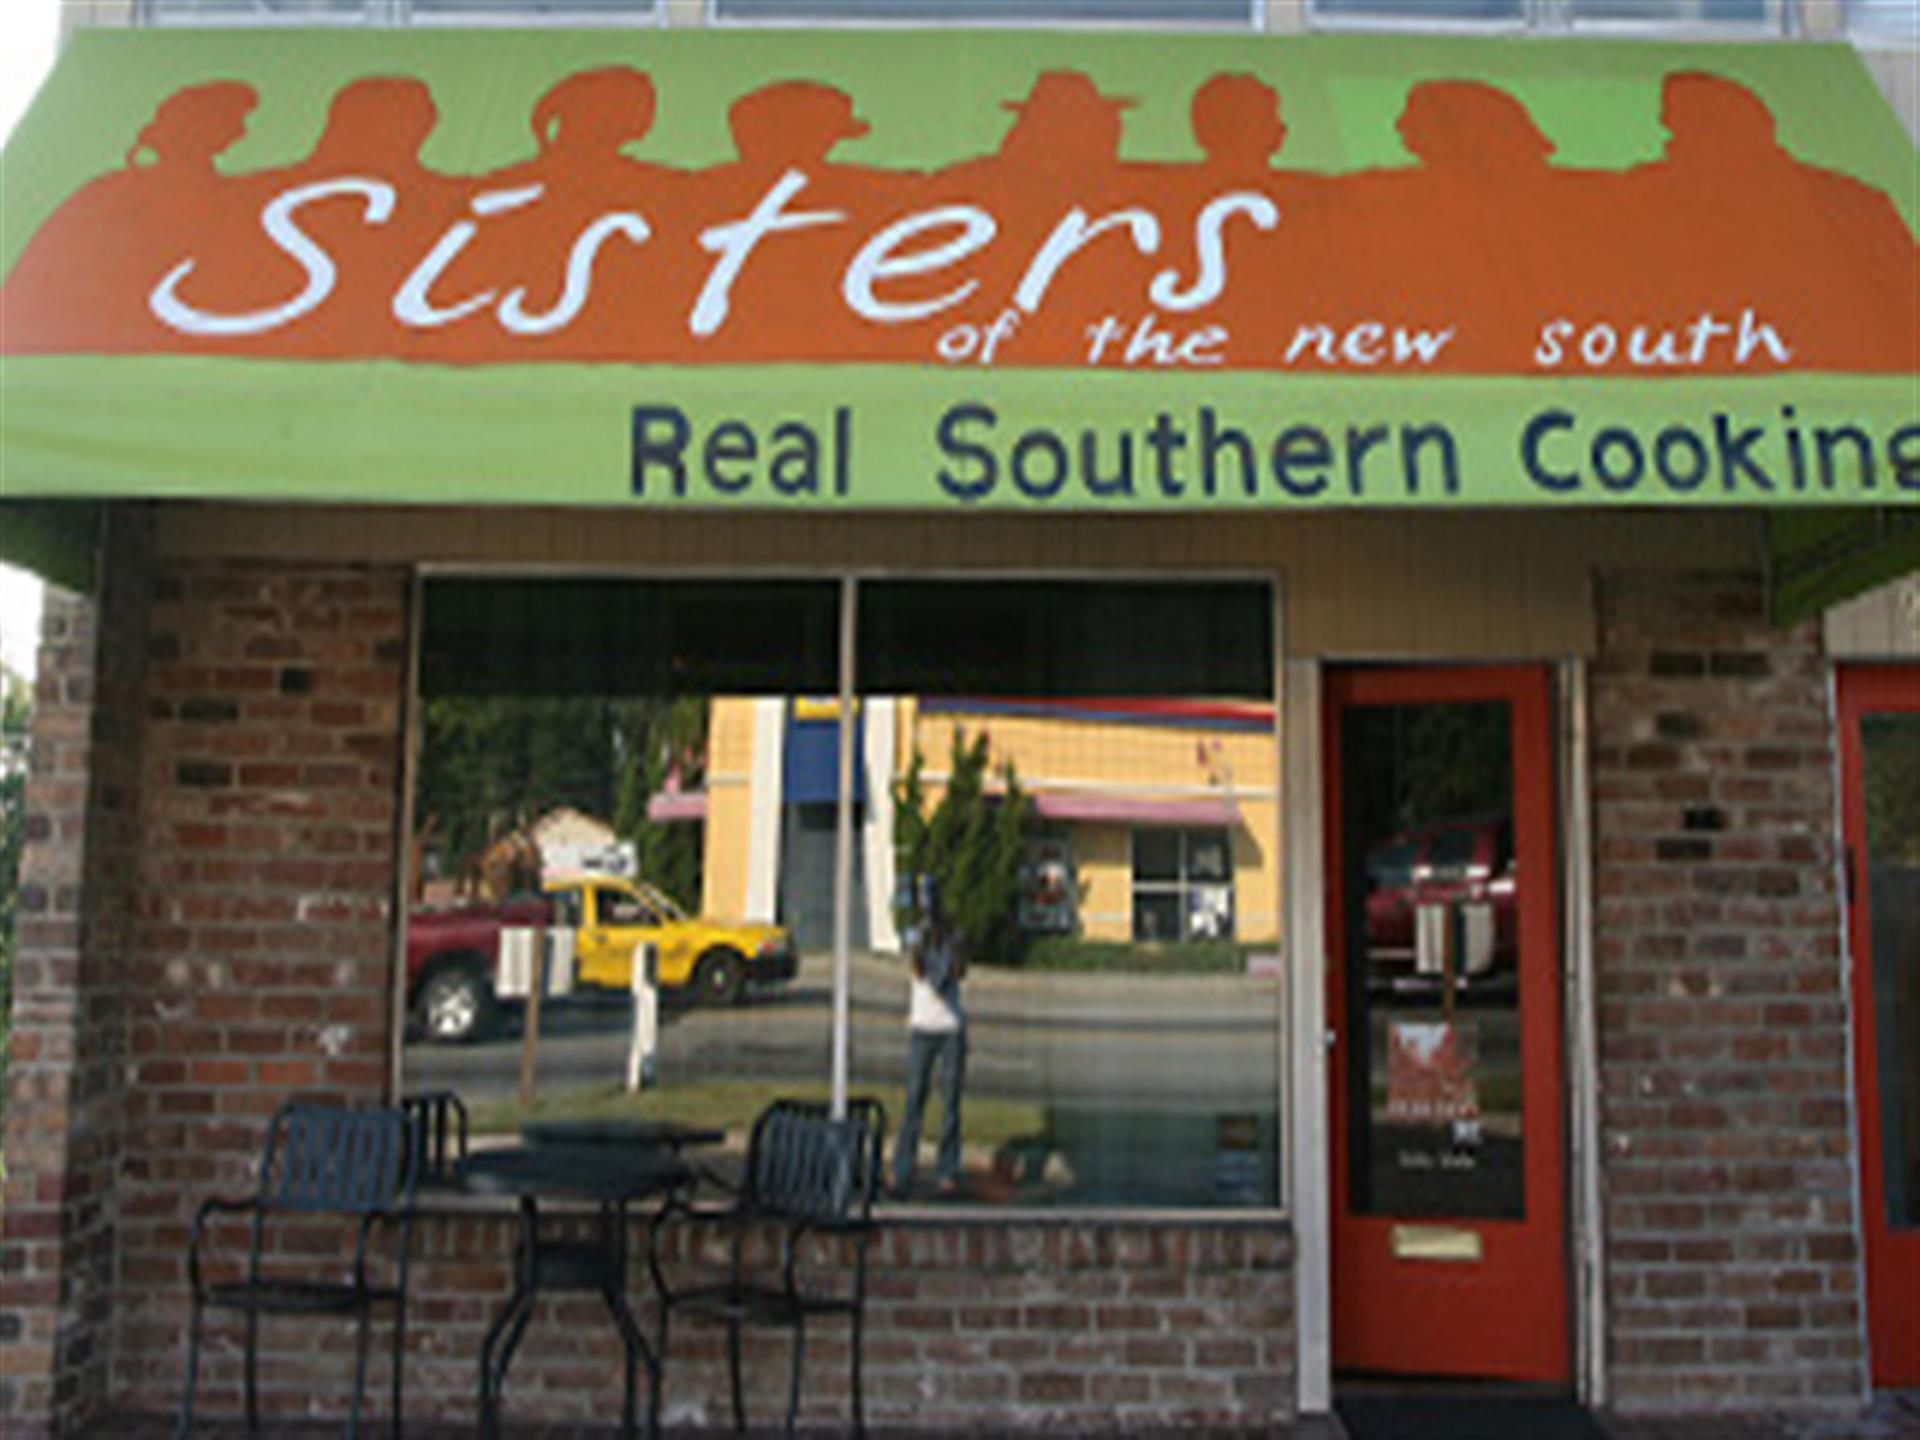 Sisters of the new south. Real southern cooking on green and orange awning above storefront entrance.